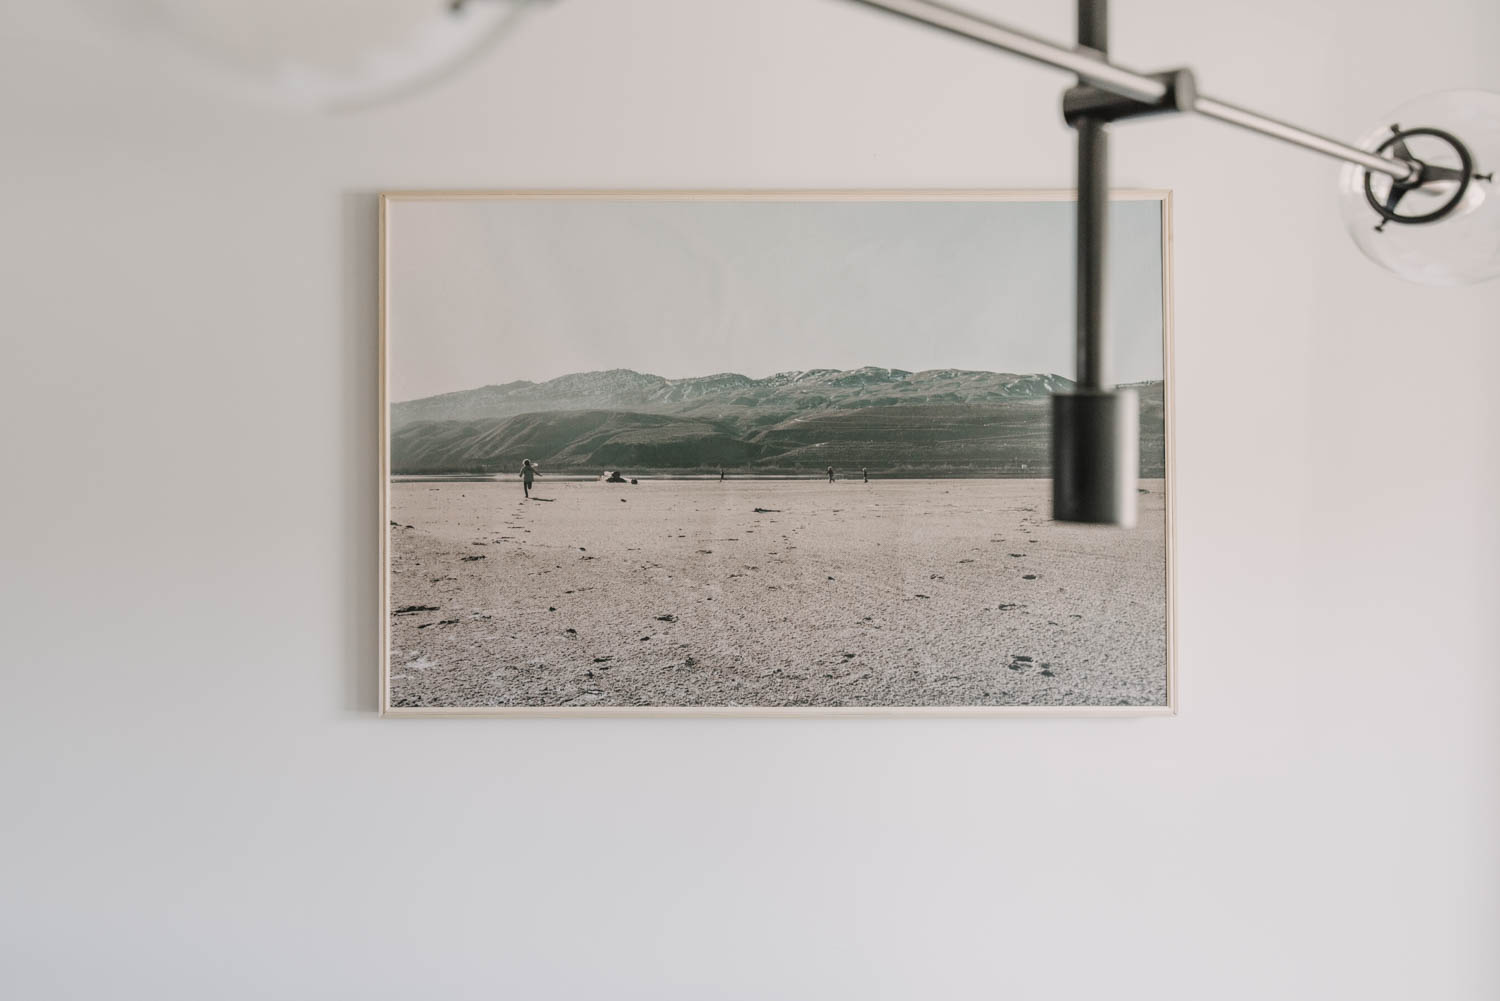 affordable large scale photo art and framing a canvas